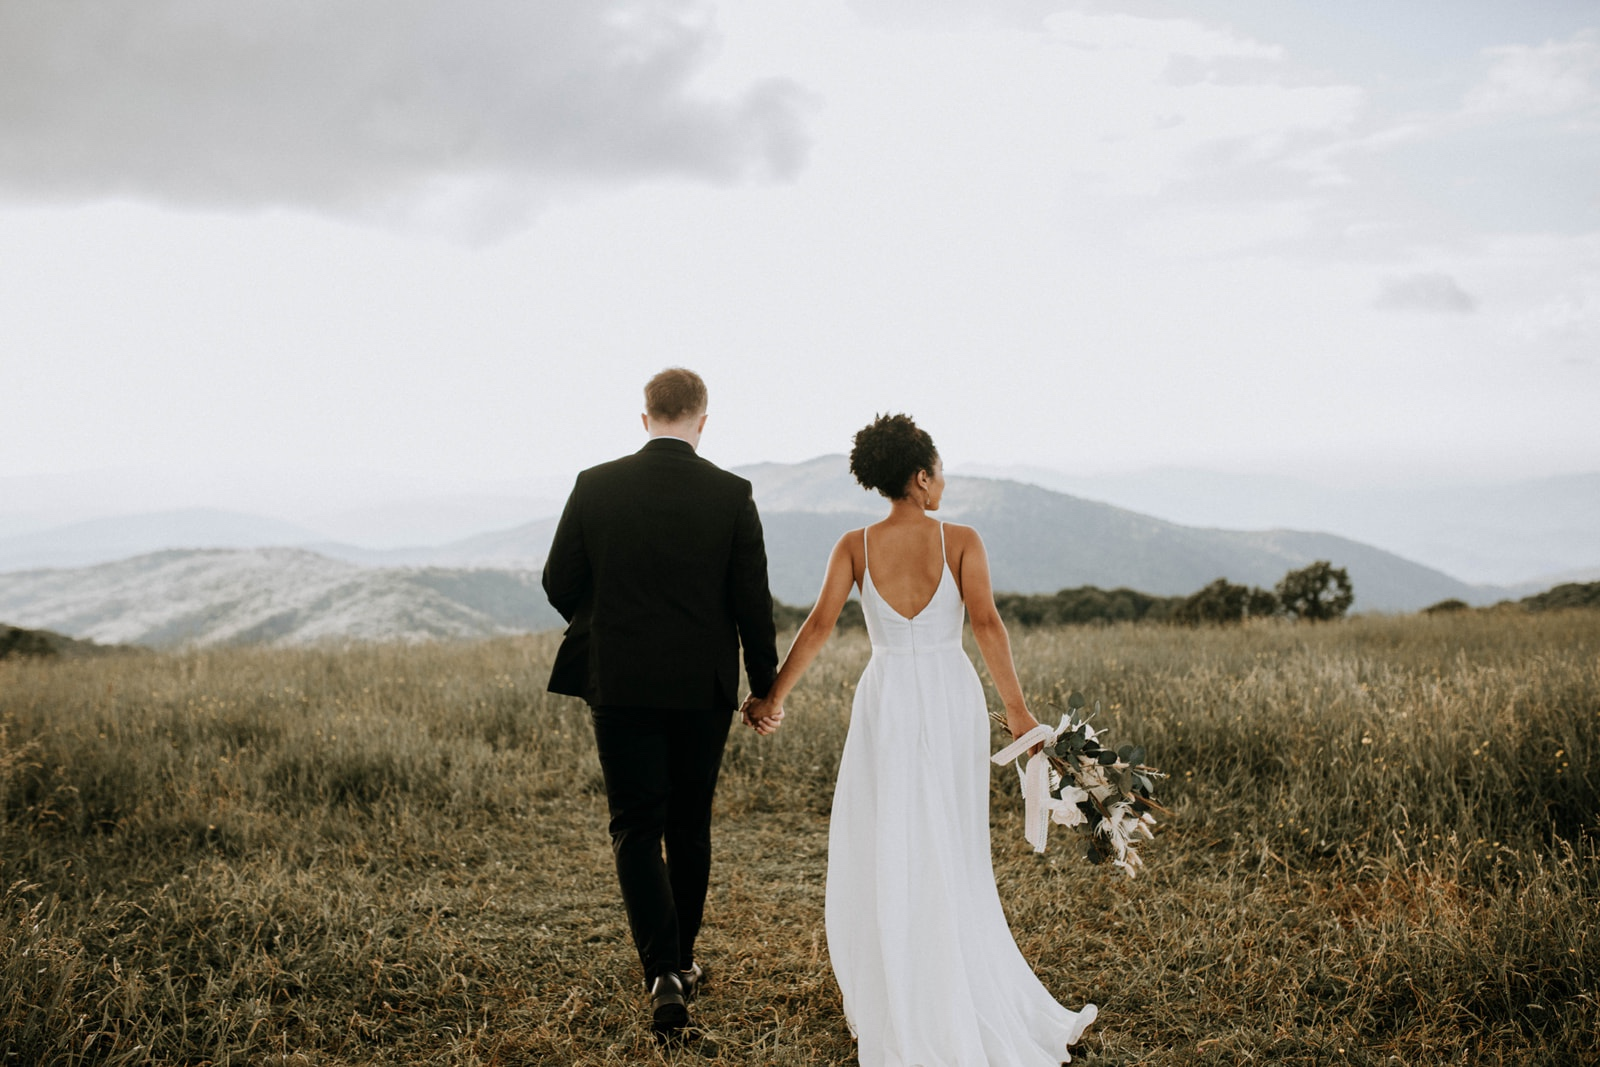 Bride and Groom holding hands and walking away